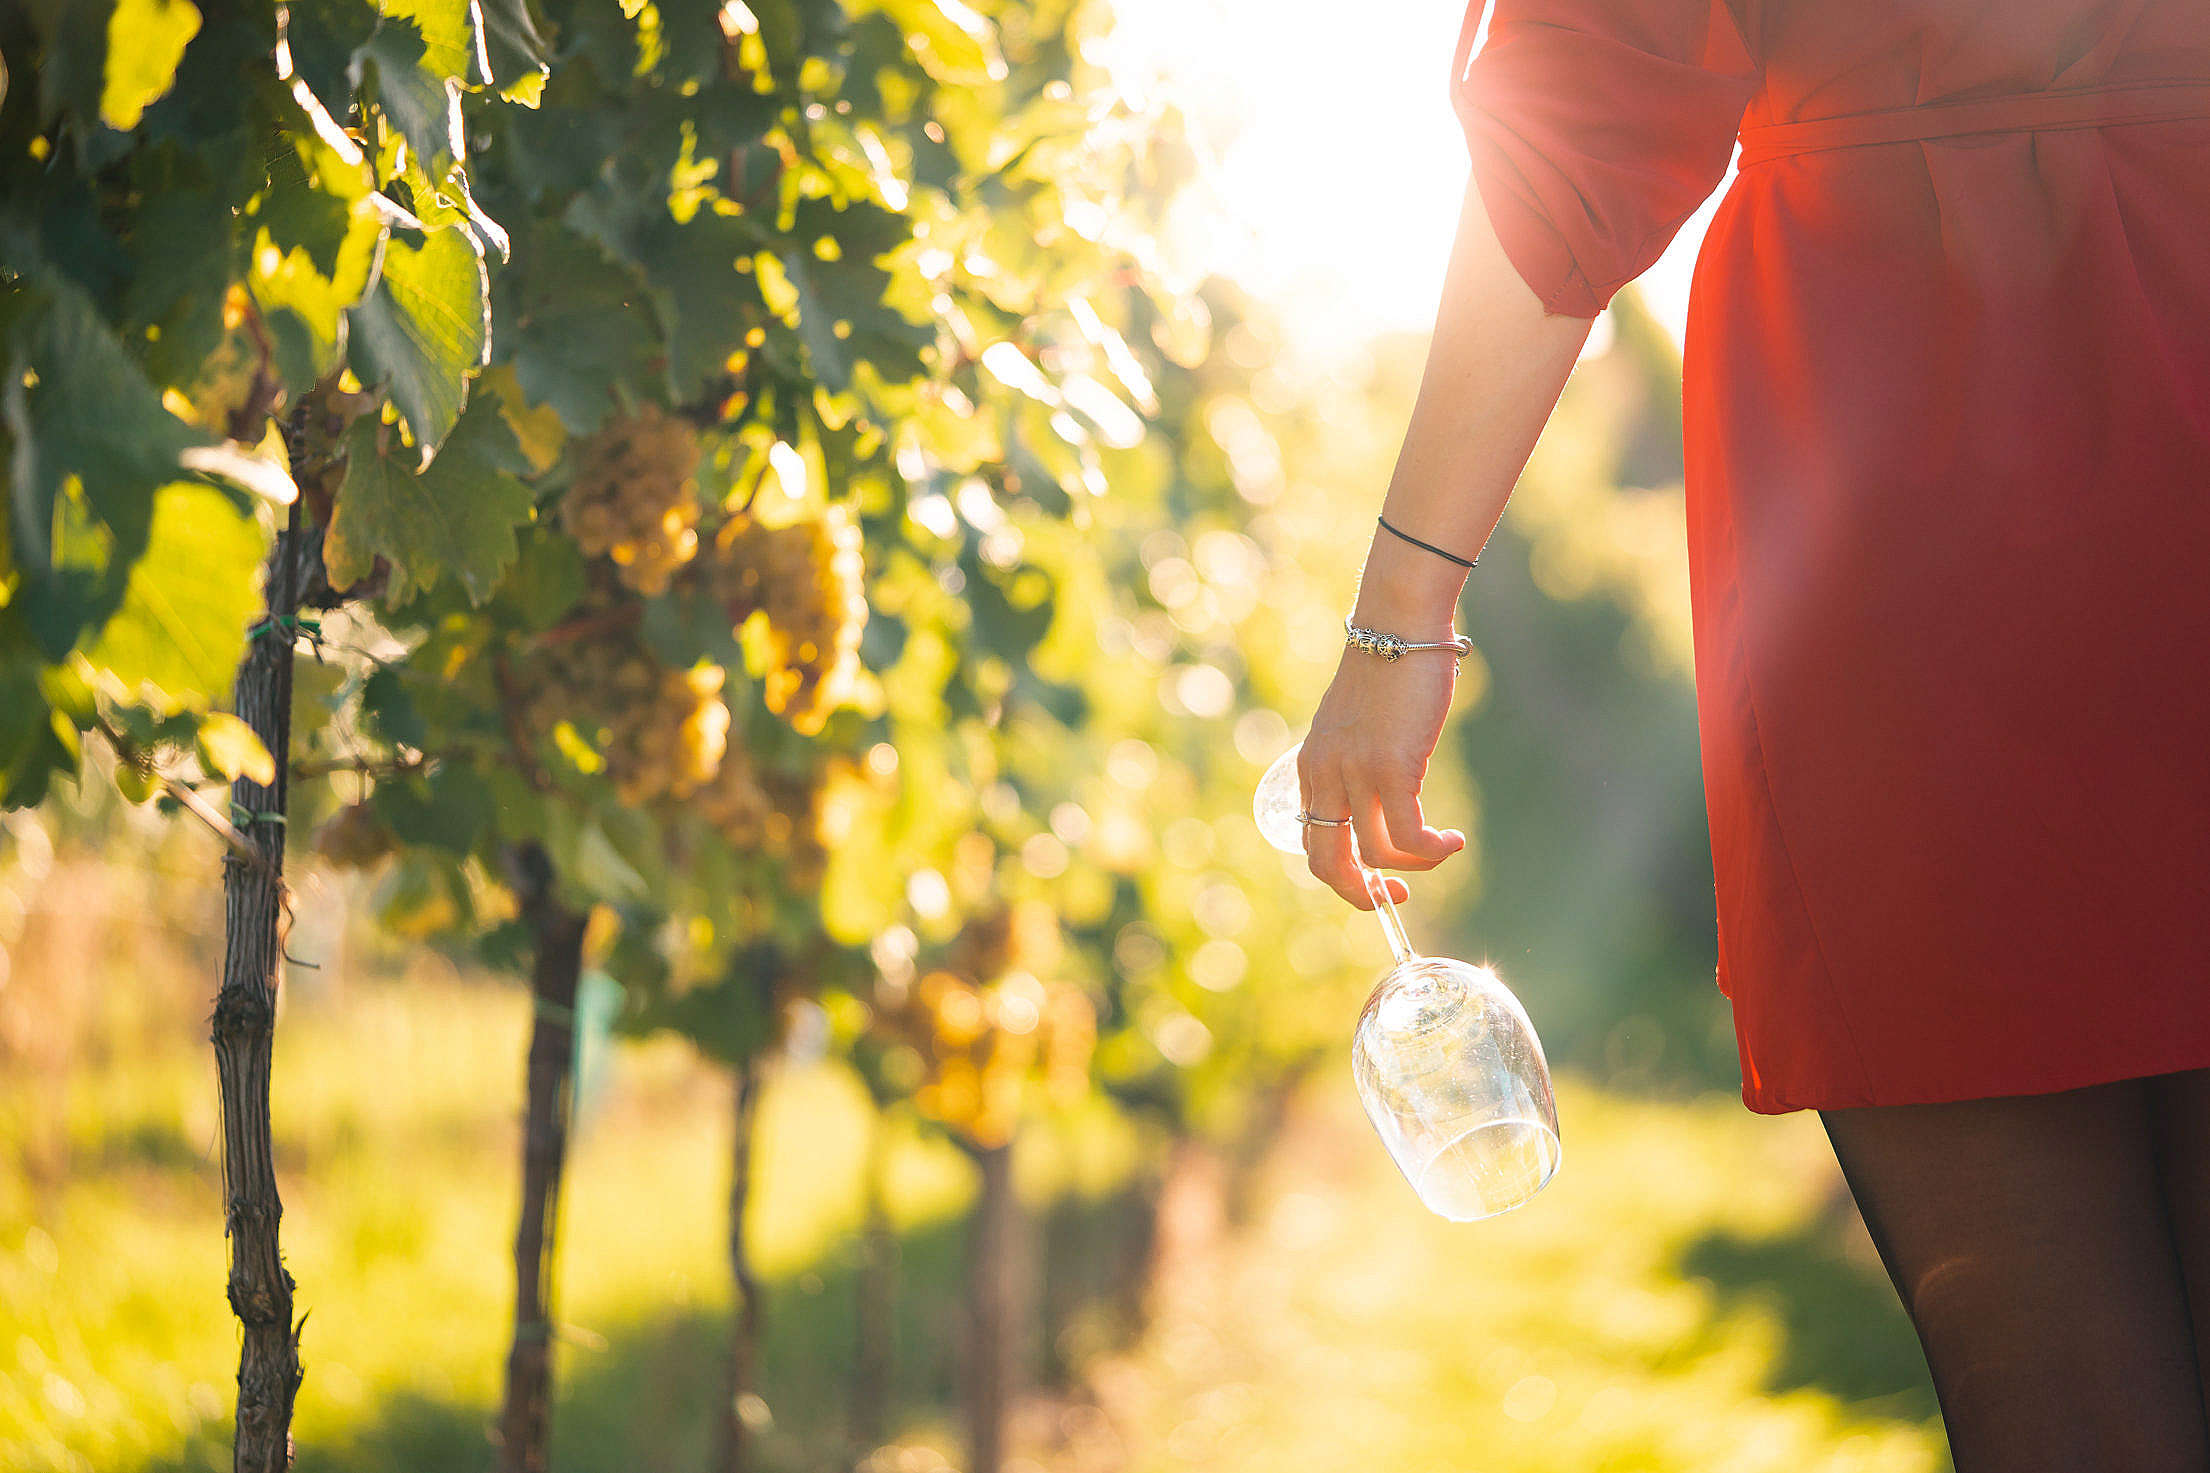 Woman Holding a Wine Glass In a Vineyard Free Stock Photo